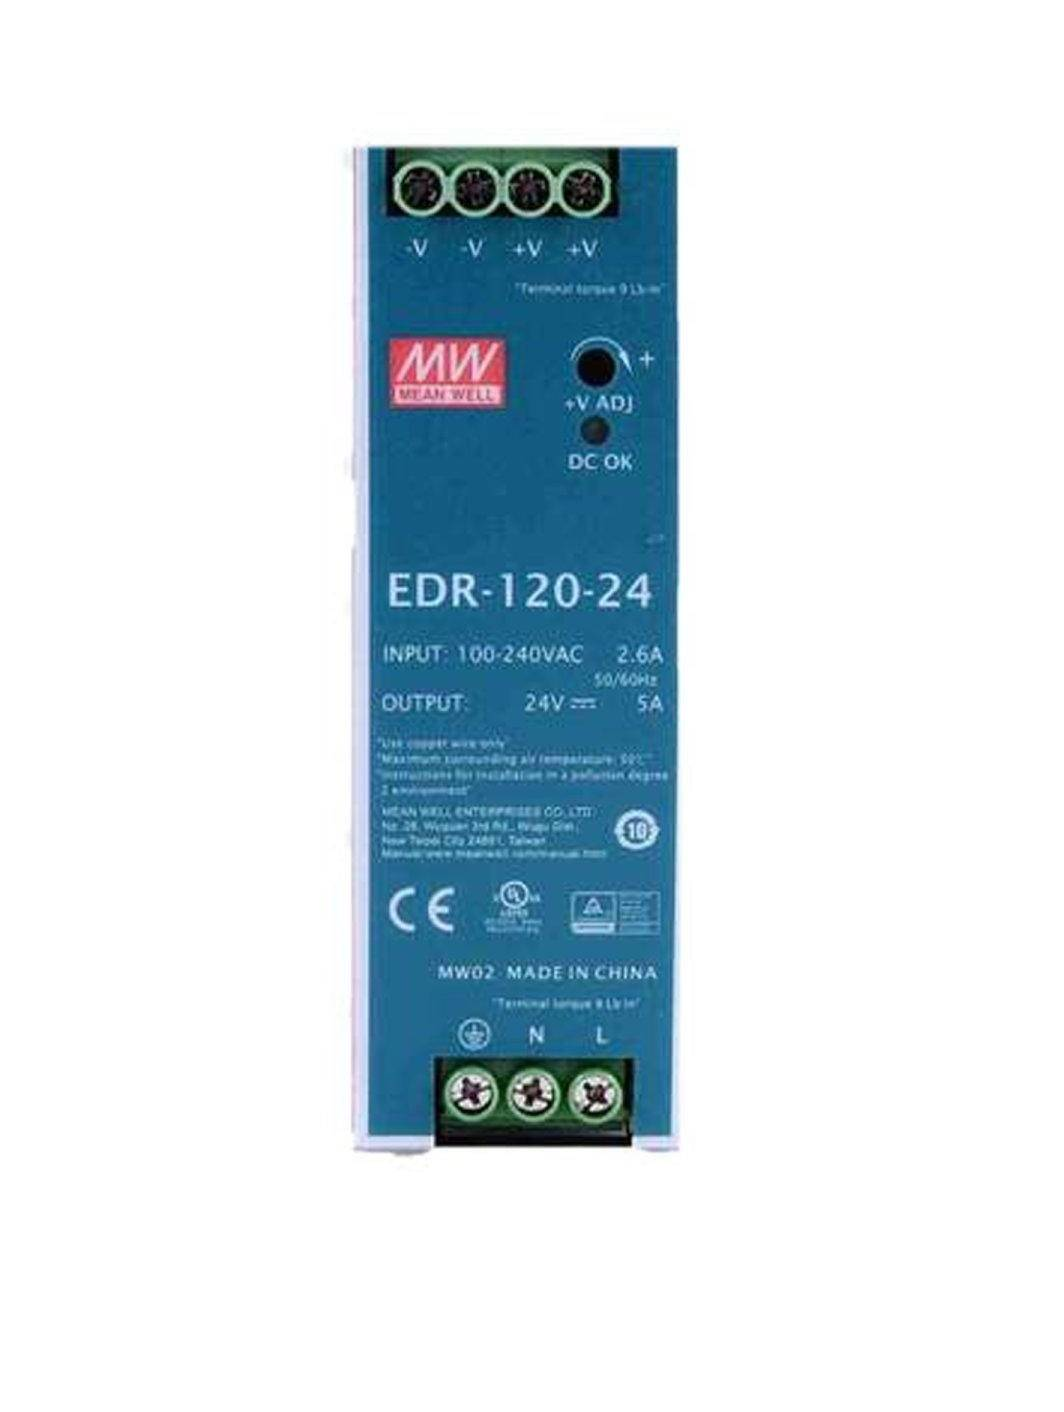 Sharvielectronics: Best Online Electronic Products Bangalore | EDR 120 24 Mean well SMPS – 24V 5A 120W Din Rail Metal Power Supply | Electronic store in bangalore